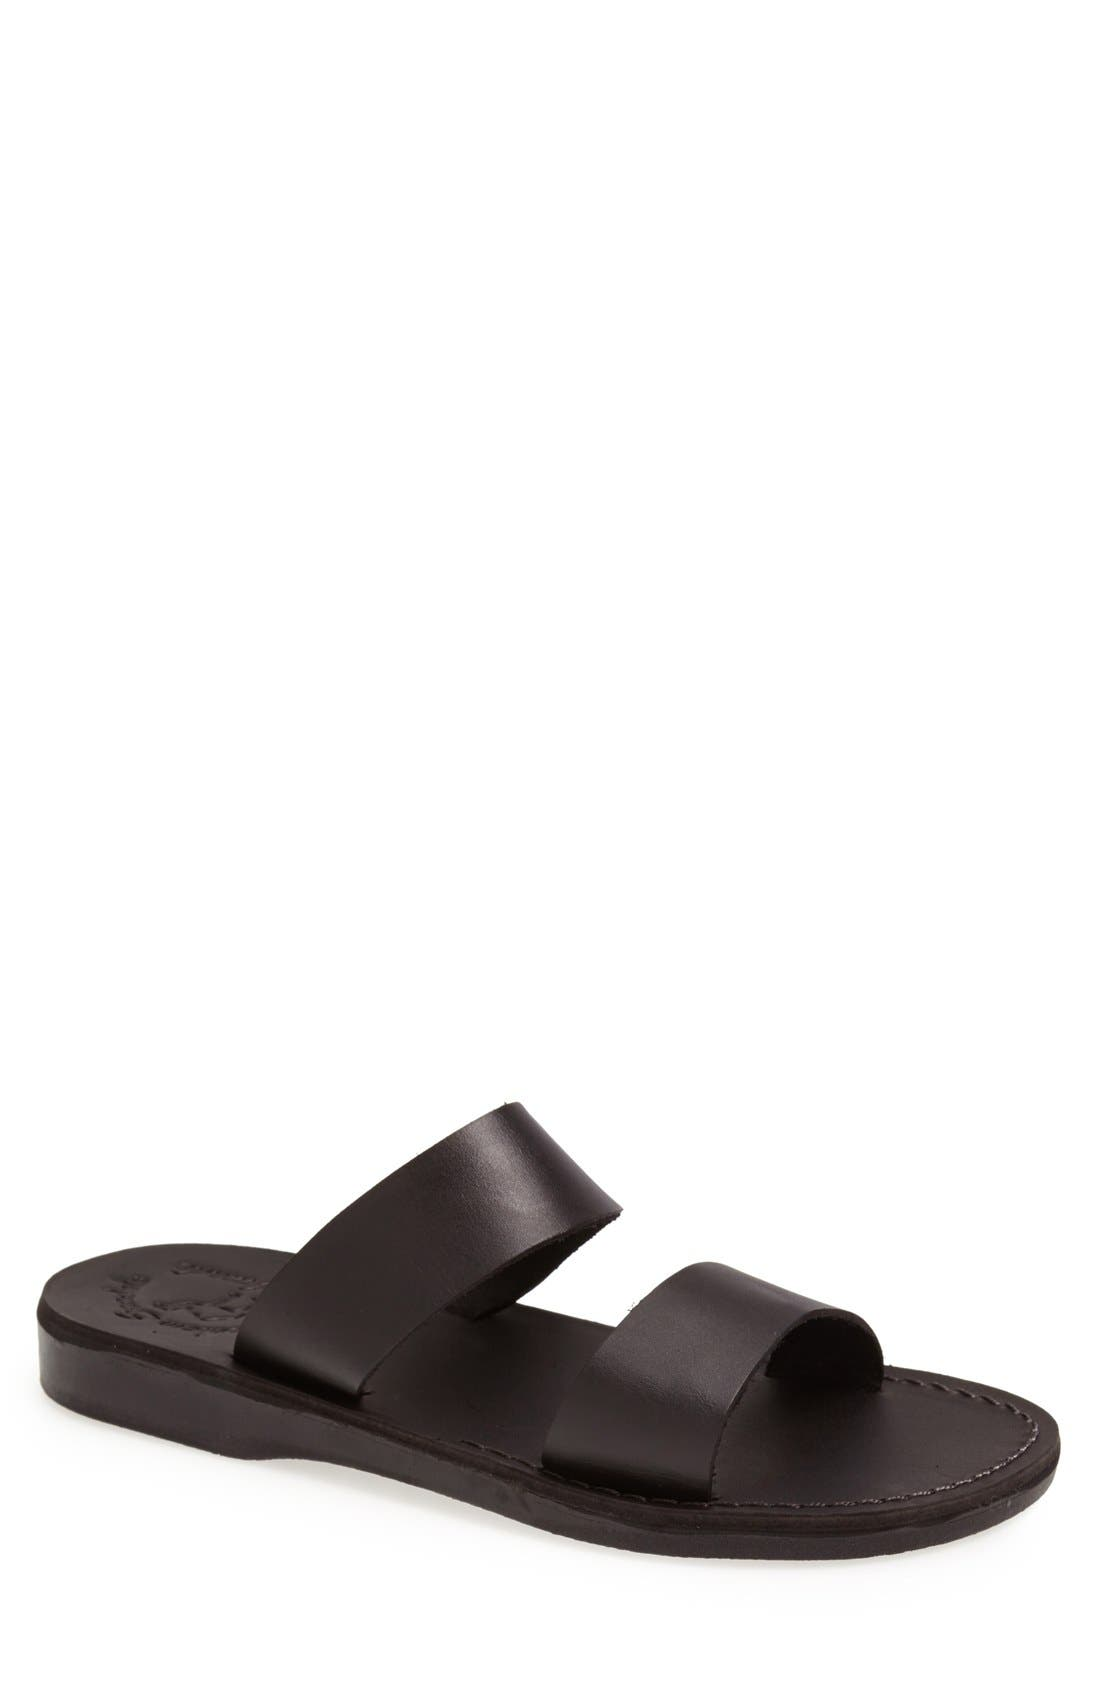 'Aviv' Leather Sandal,                             Main thumbnail 1, color,                             BLACK